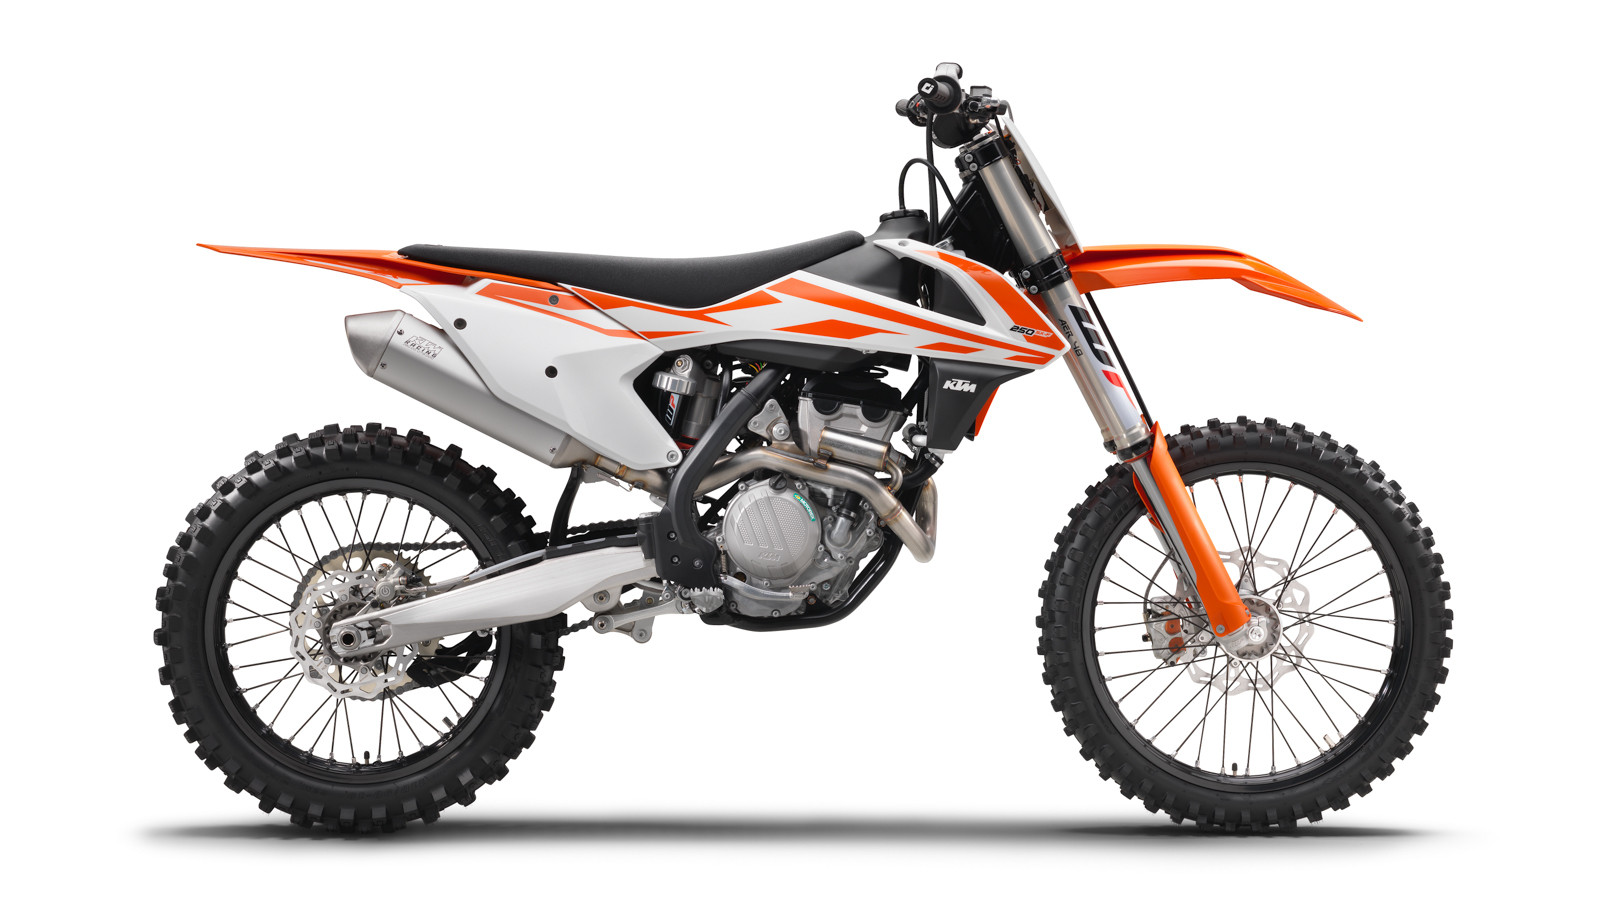 2017 KTM 250 SX-F - First Look: 2017 KTM Motocross and Cross-Country Line - Motocross Pictures - Vital MX